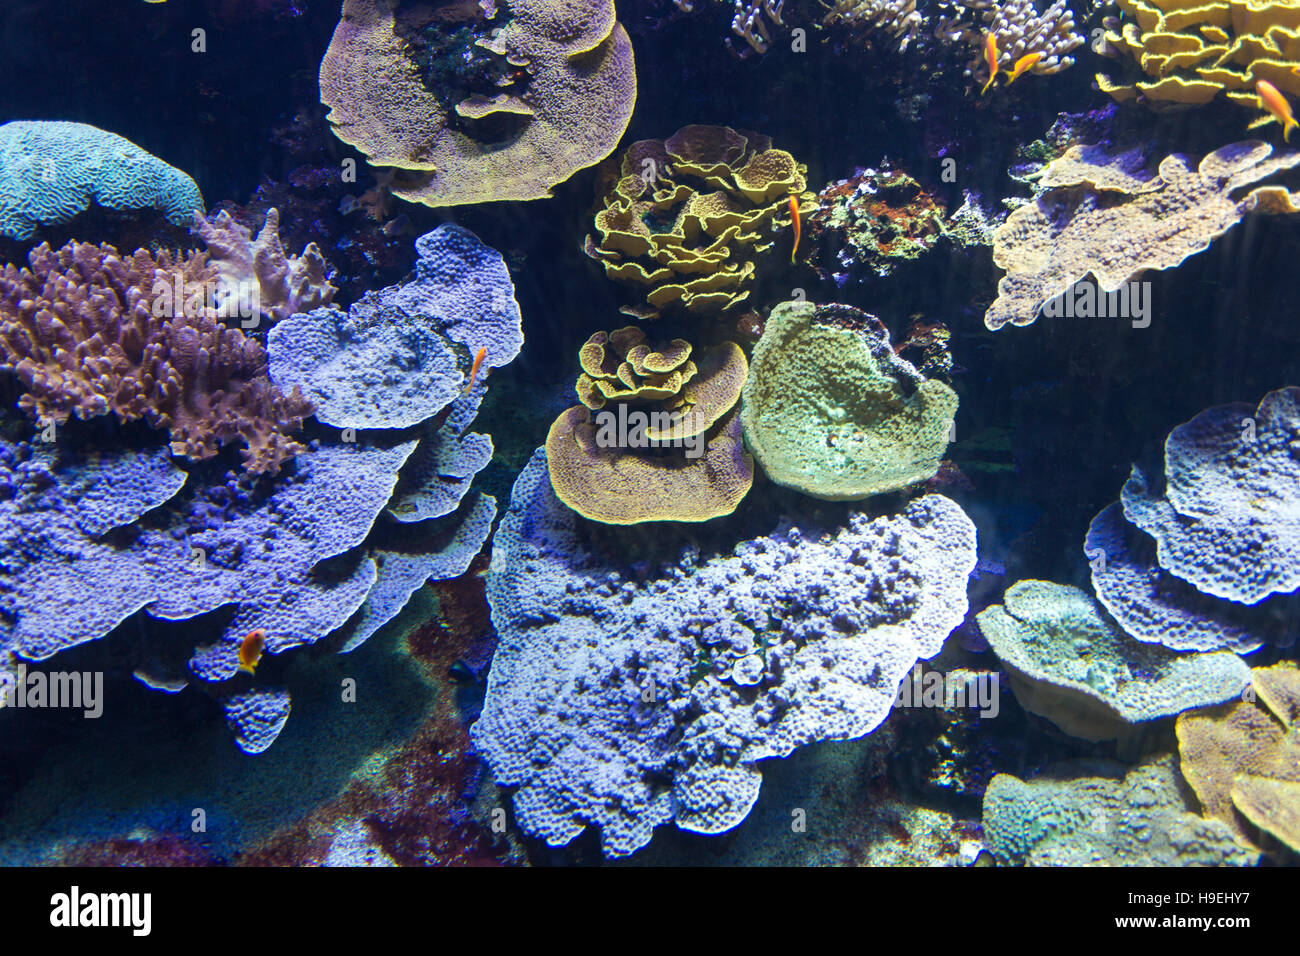 coral reef with soft and hard corals with exotic fishes - Stock Image